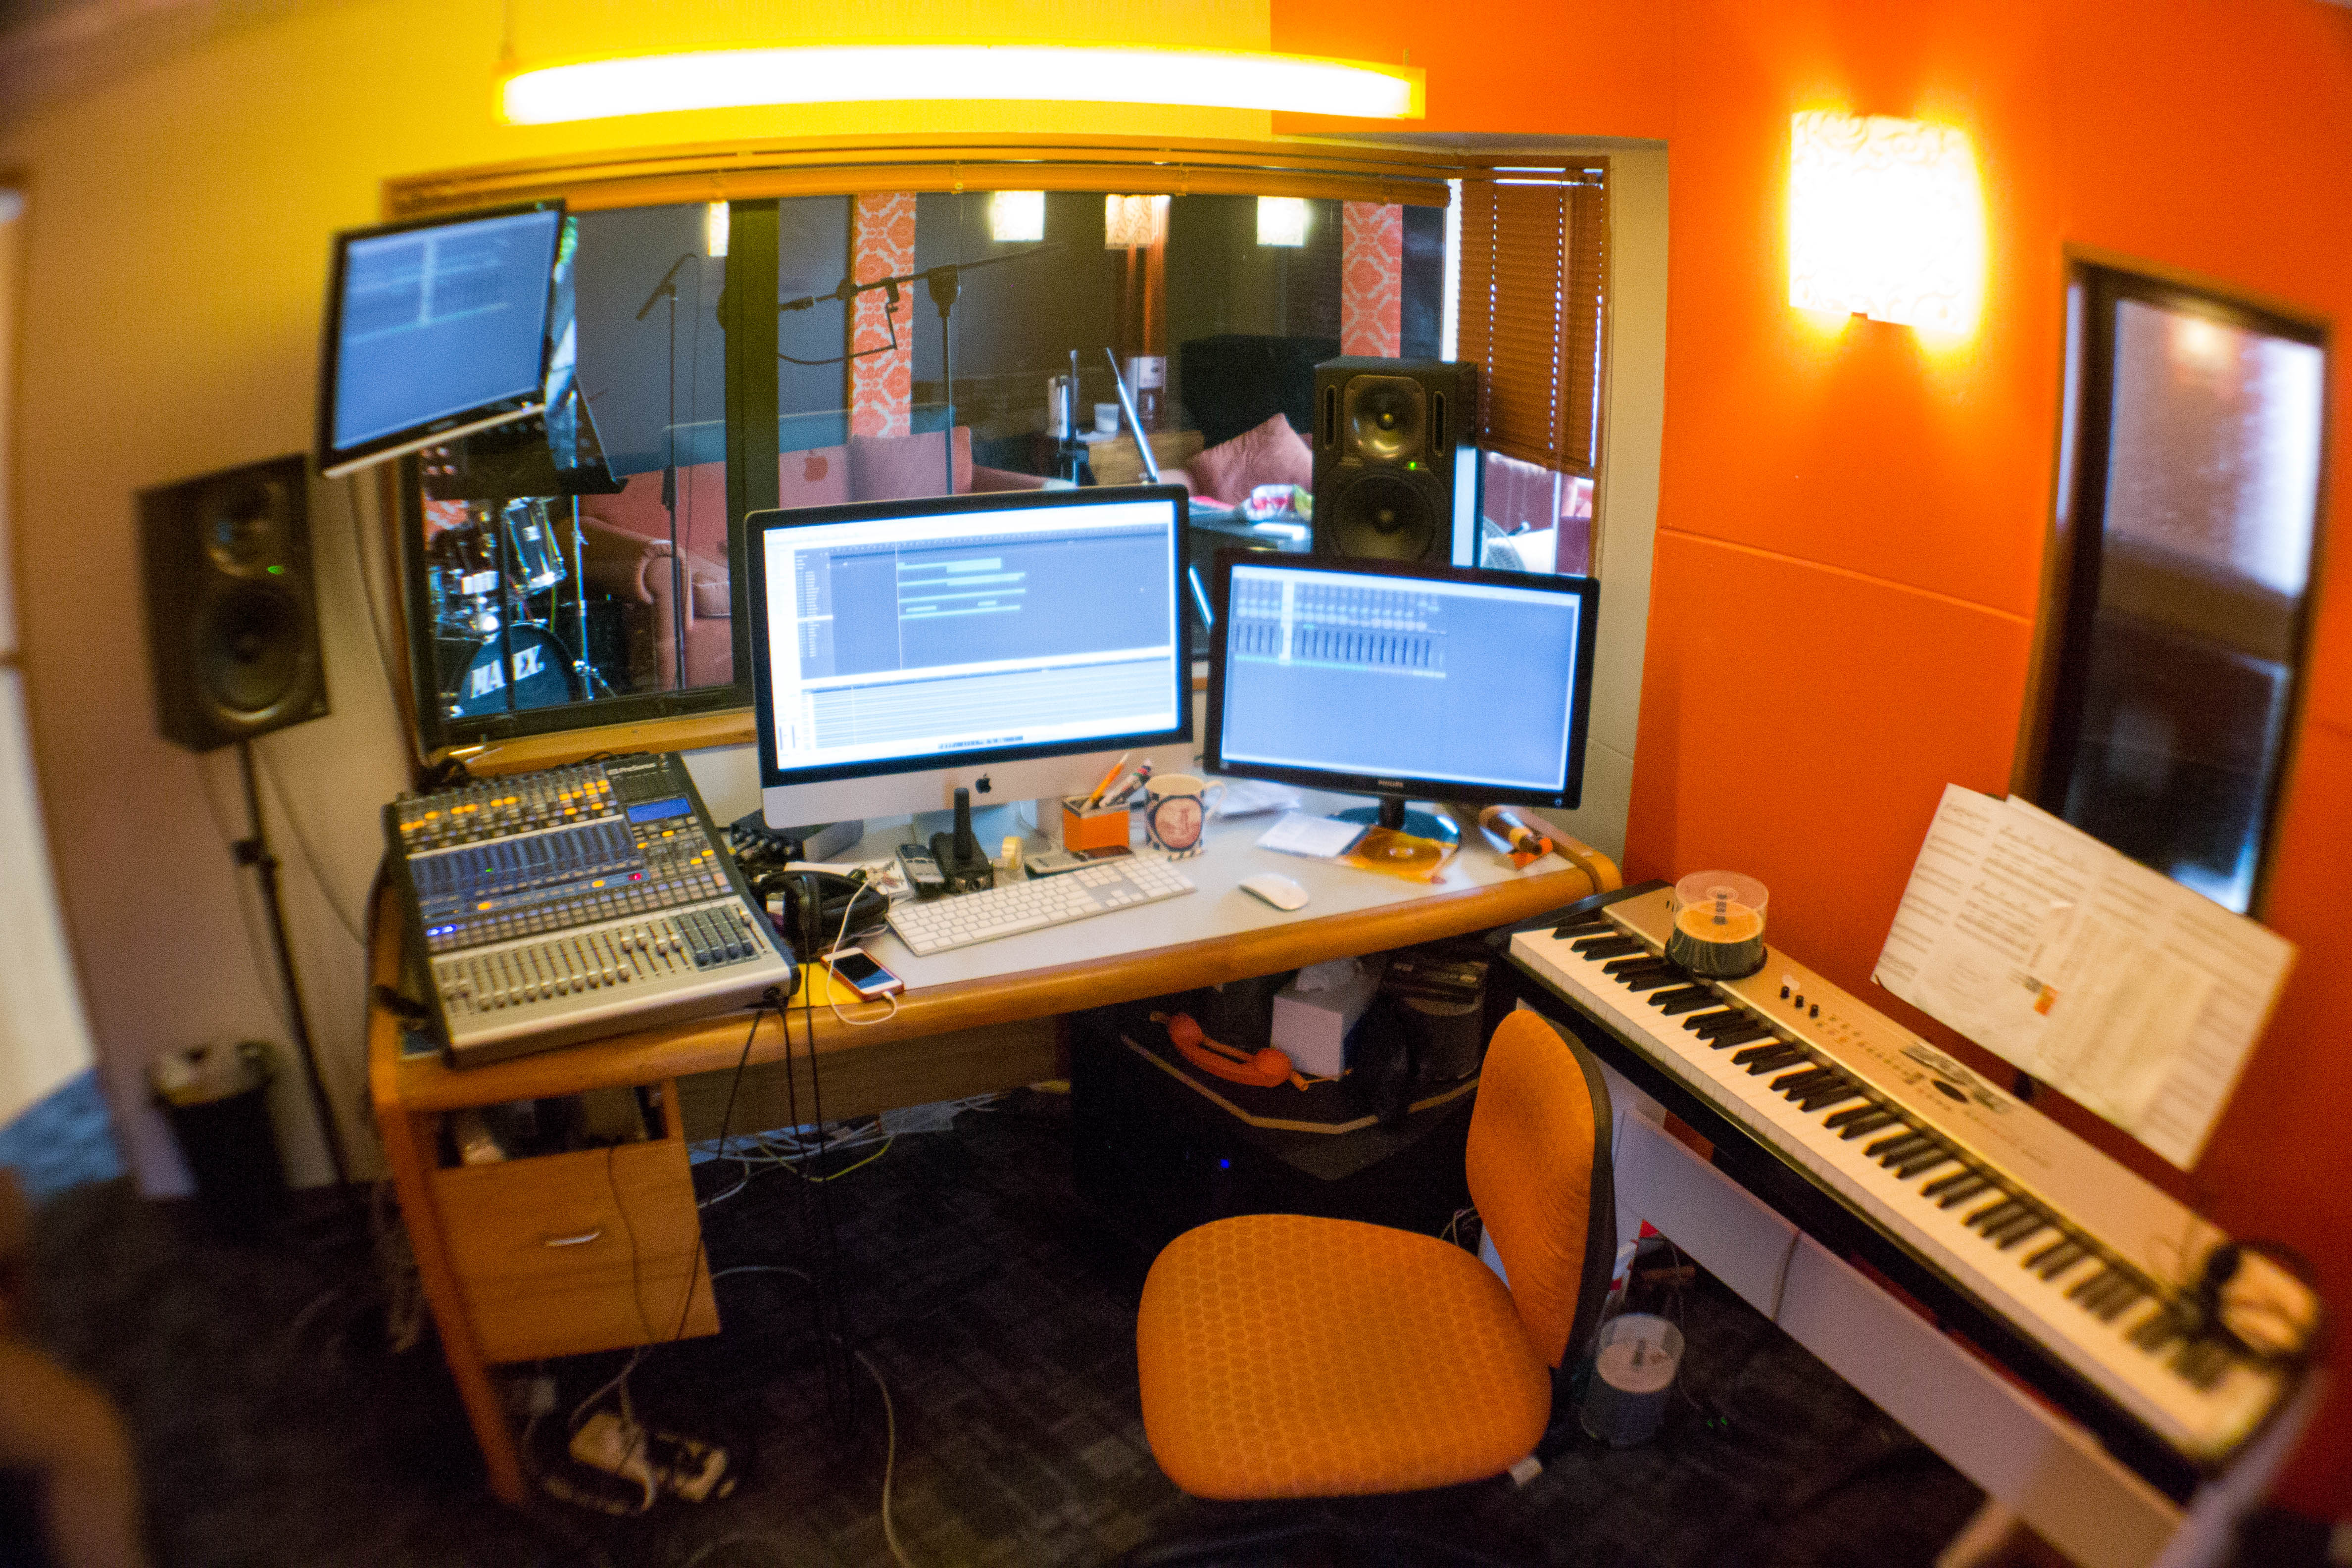 Music Production  Orange Recording Studios. University Online Courses Patriot Auto School. Fast Muscle Growth Tips Current Mortgae Rates. College Of Business Csu Dividend Credit Cards. Guardian Security Indianapolis. Which Course Is Right For Me. Low Cost Credit Card Processing. Email Hosting For My Domain Math Tutor Nyc. Orthopedic Oncologist Nj Number One On Google